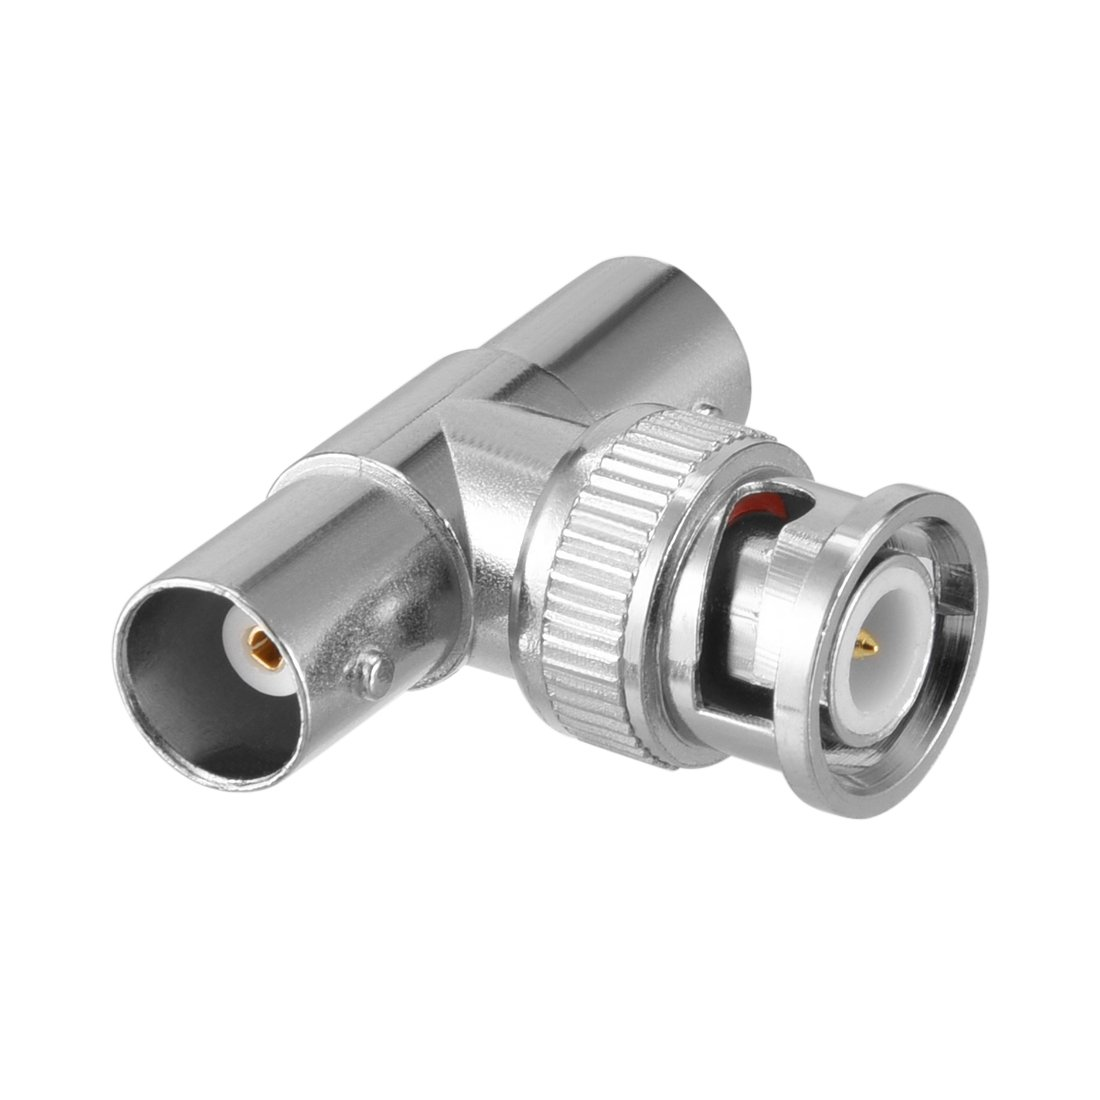 uxcell 3 Way BNC Male to Female Coaxial Connectors with Brass Inner Core for CCTV Home Security 4pcs